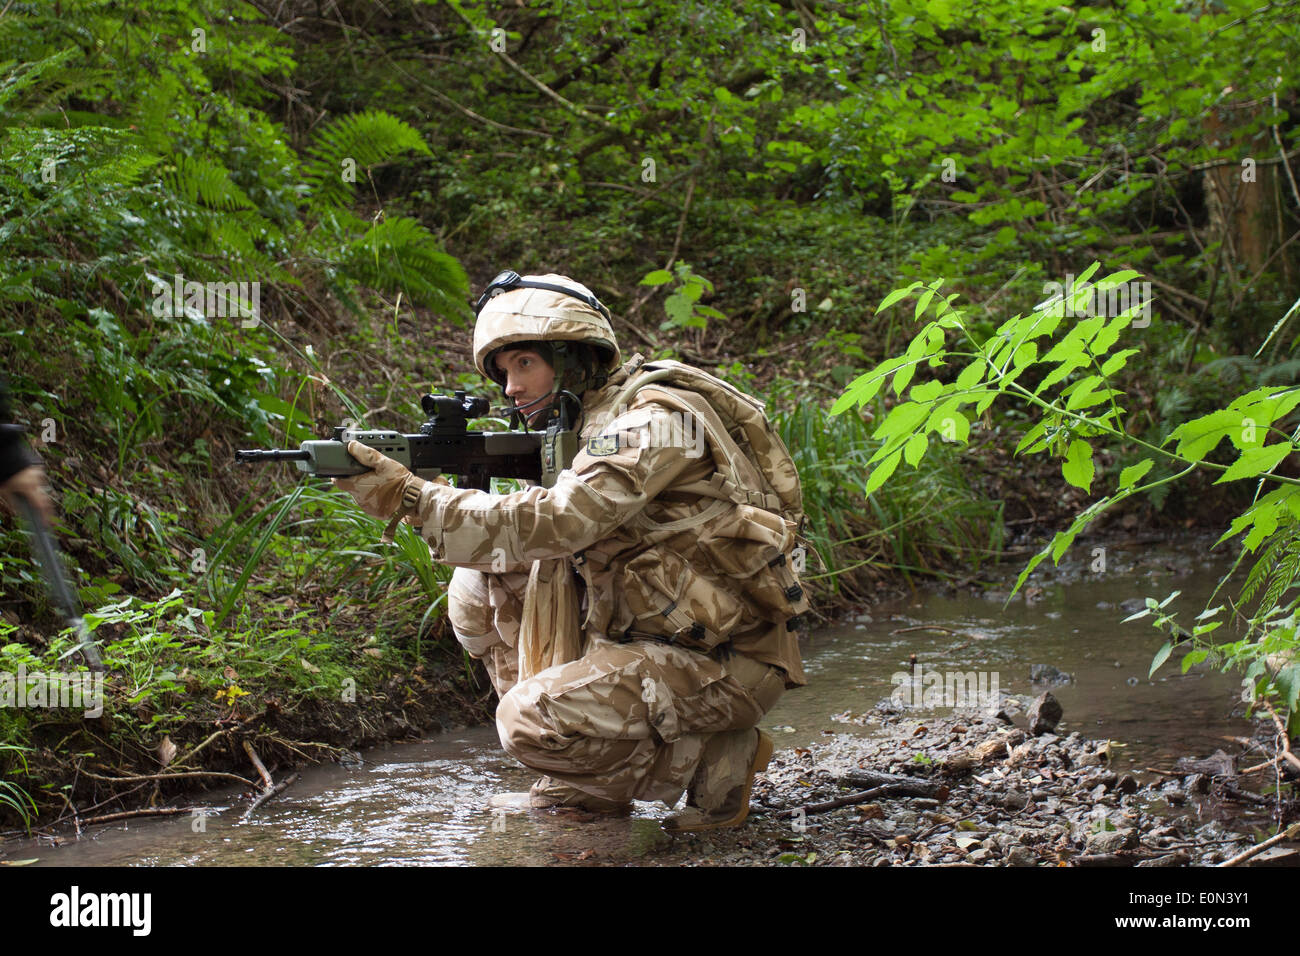 Soldiers in full British Army Uniform - Stock Image